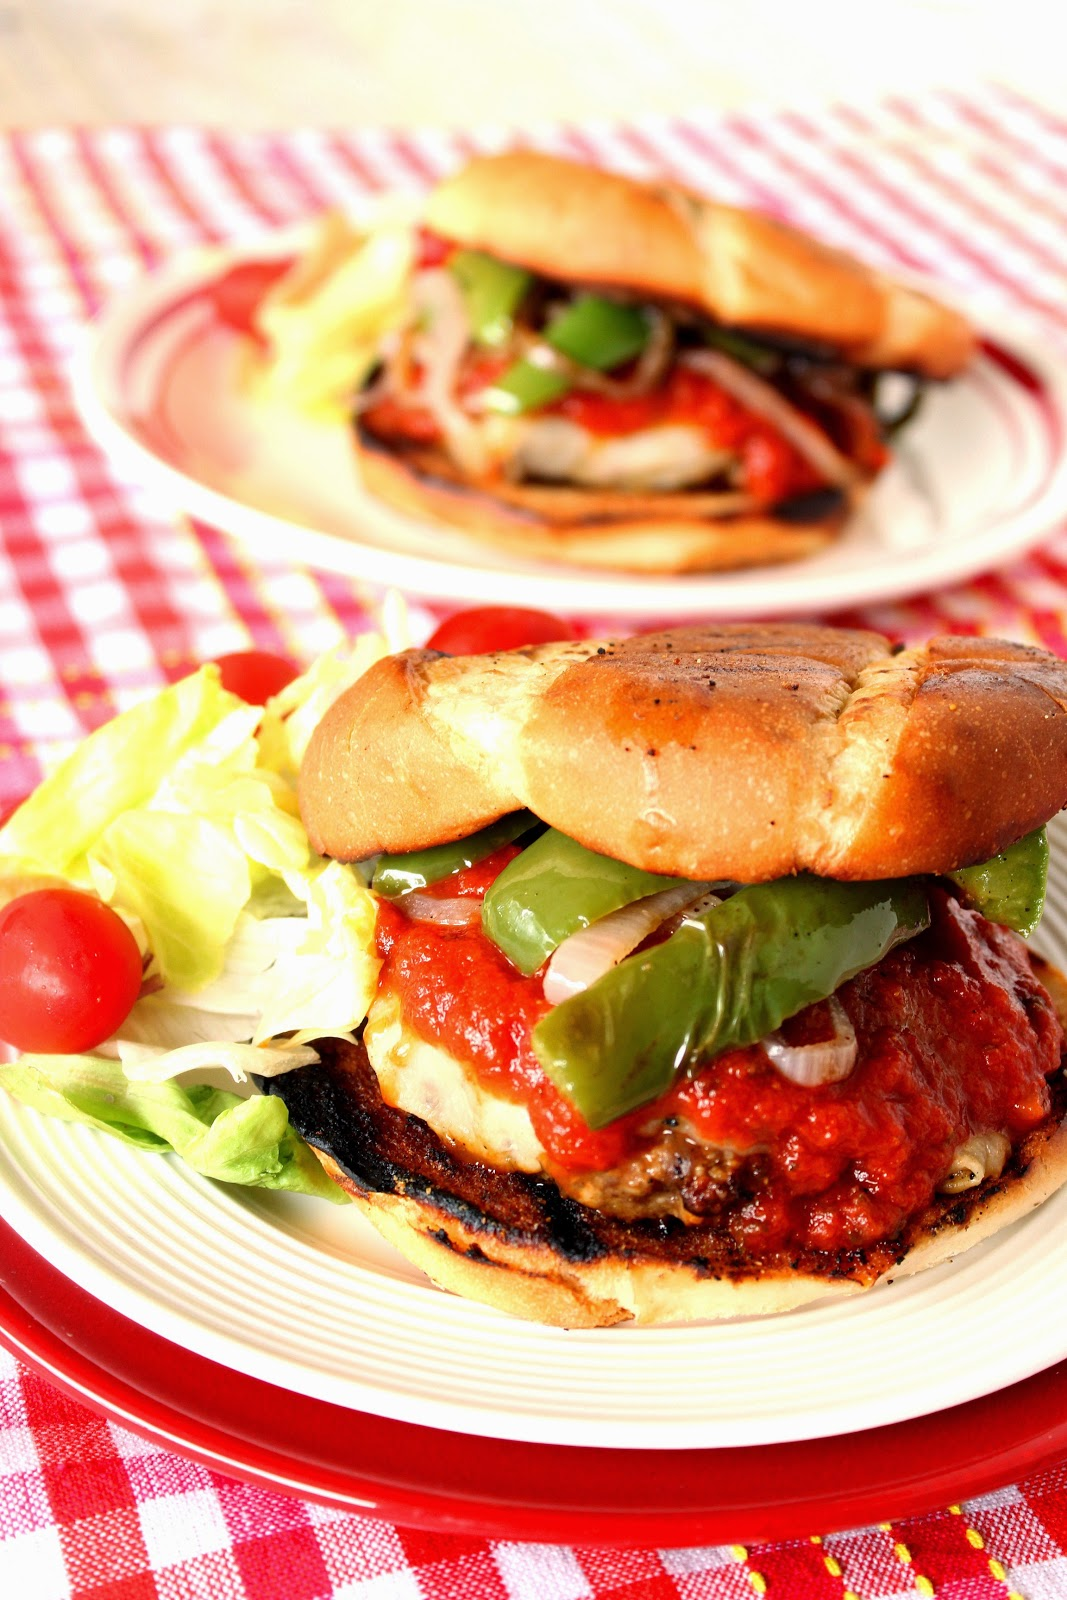 Italian Sausage Pizza Burger Recipe via Kudos Kitchen by Renee